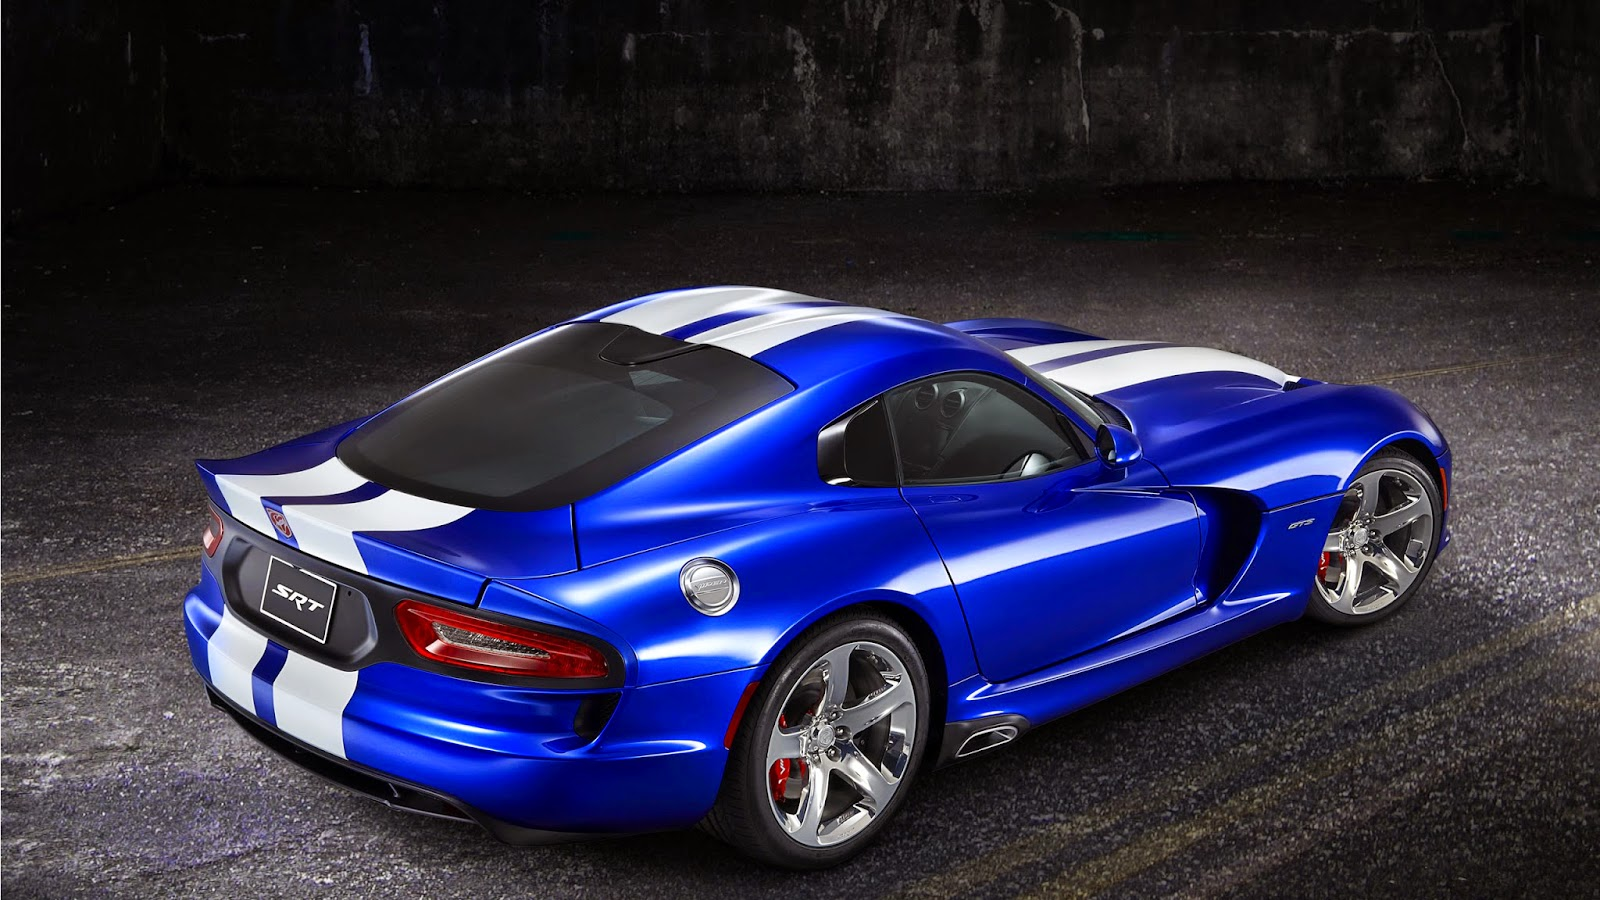 Foto Mobil Sports Dodge SRT Viper Limited Edition